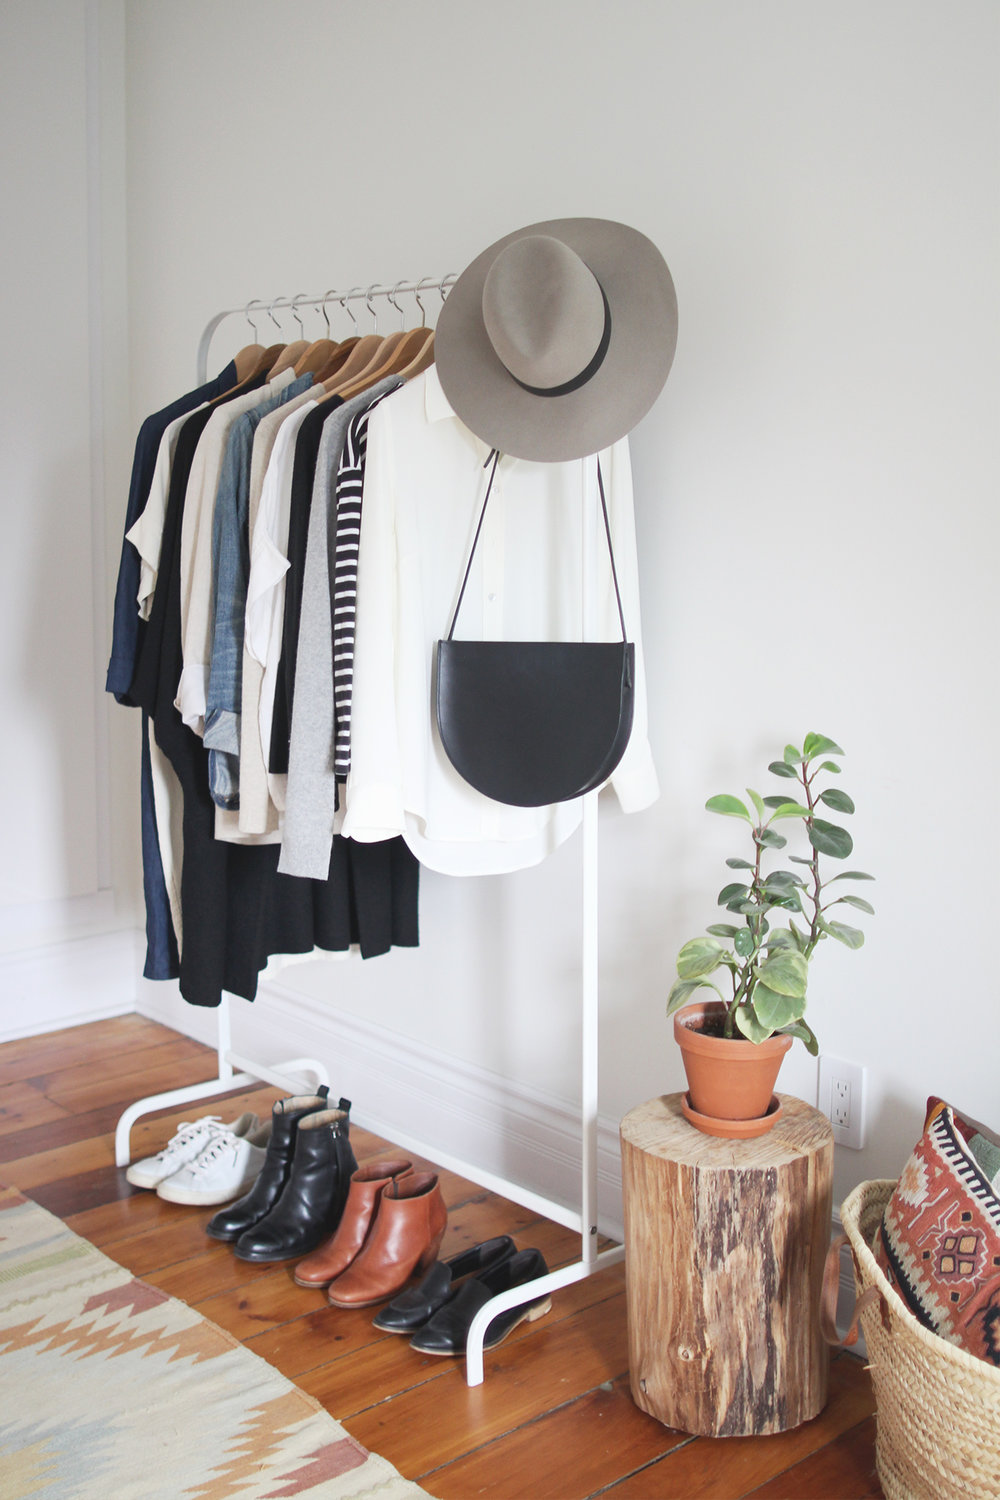 CAPSULE WARDROBE: GETTING STARTED - This Wild Home